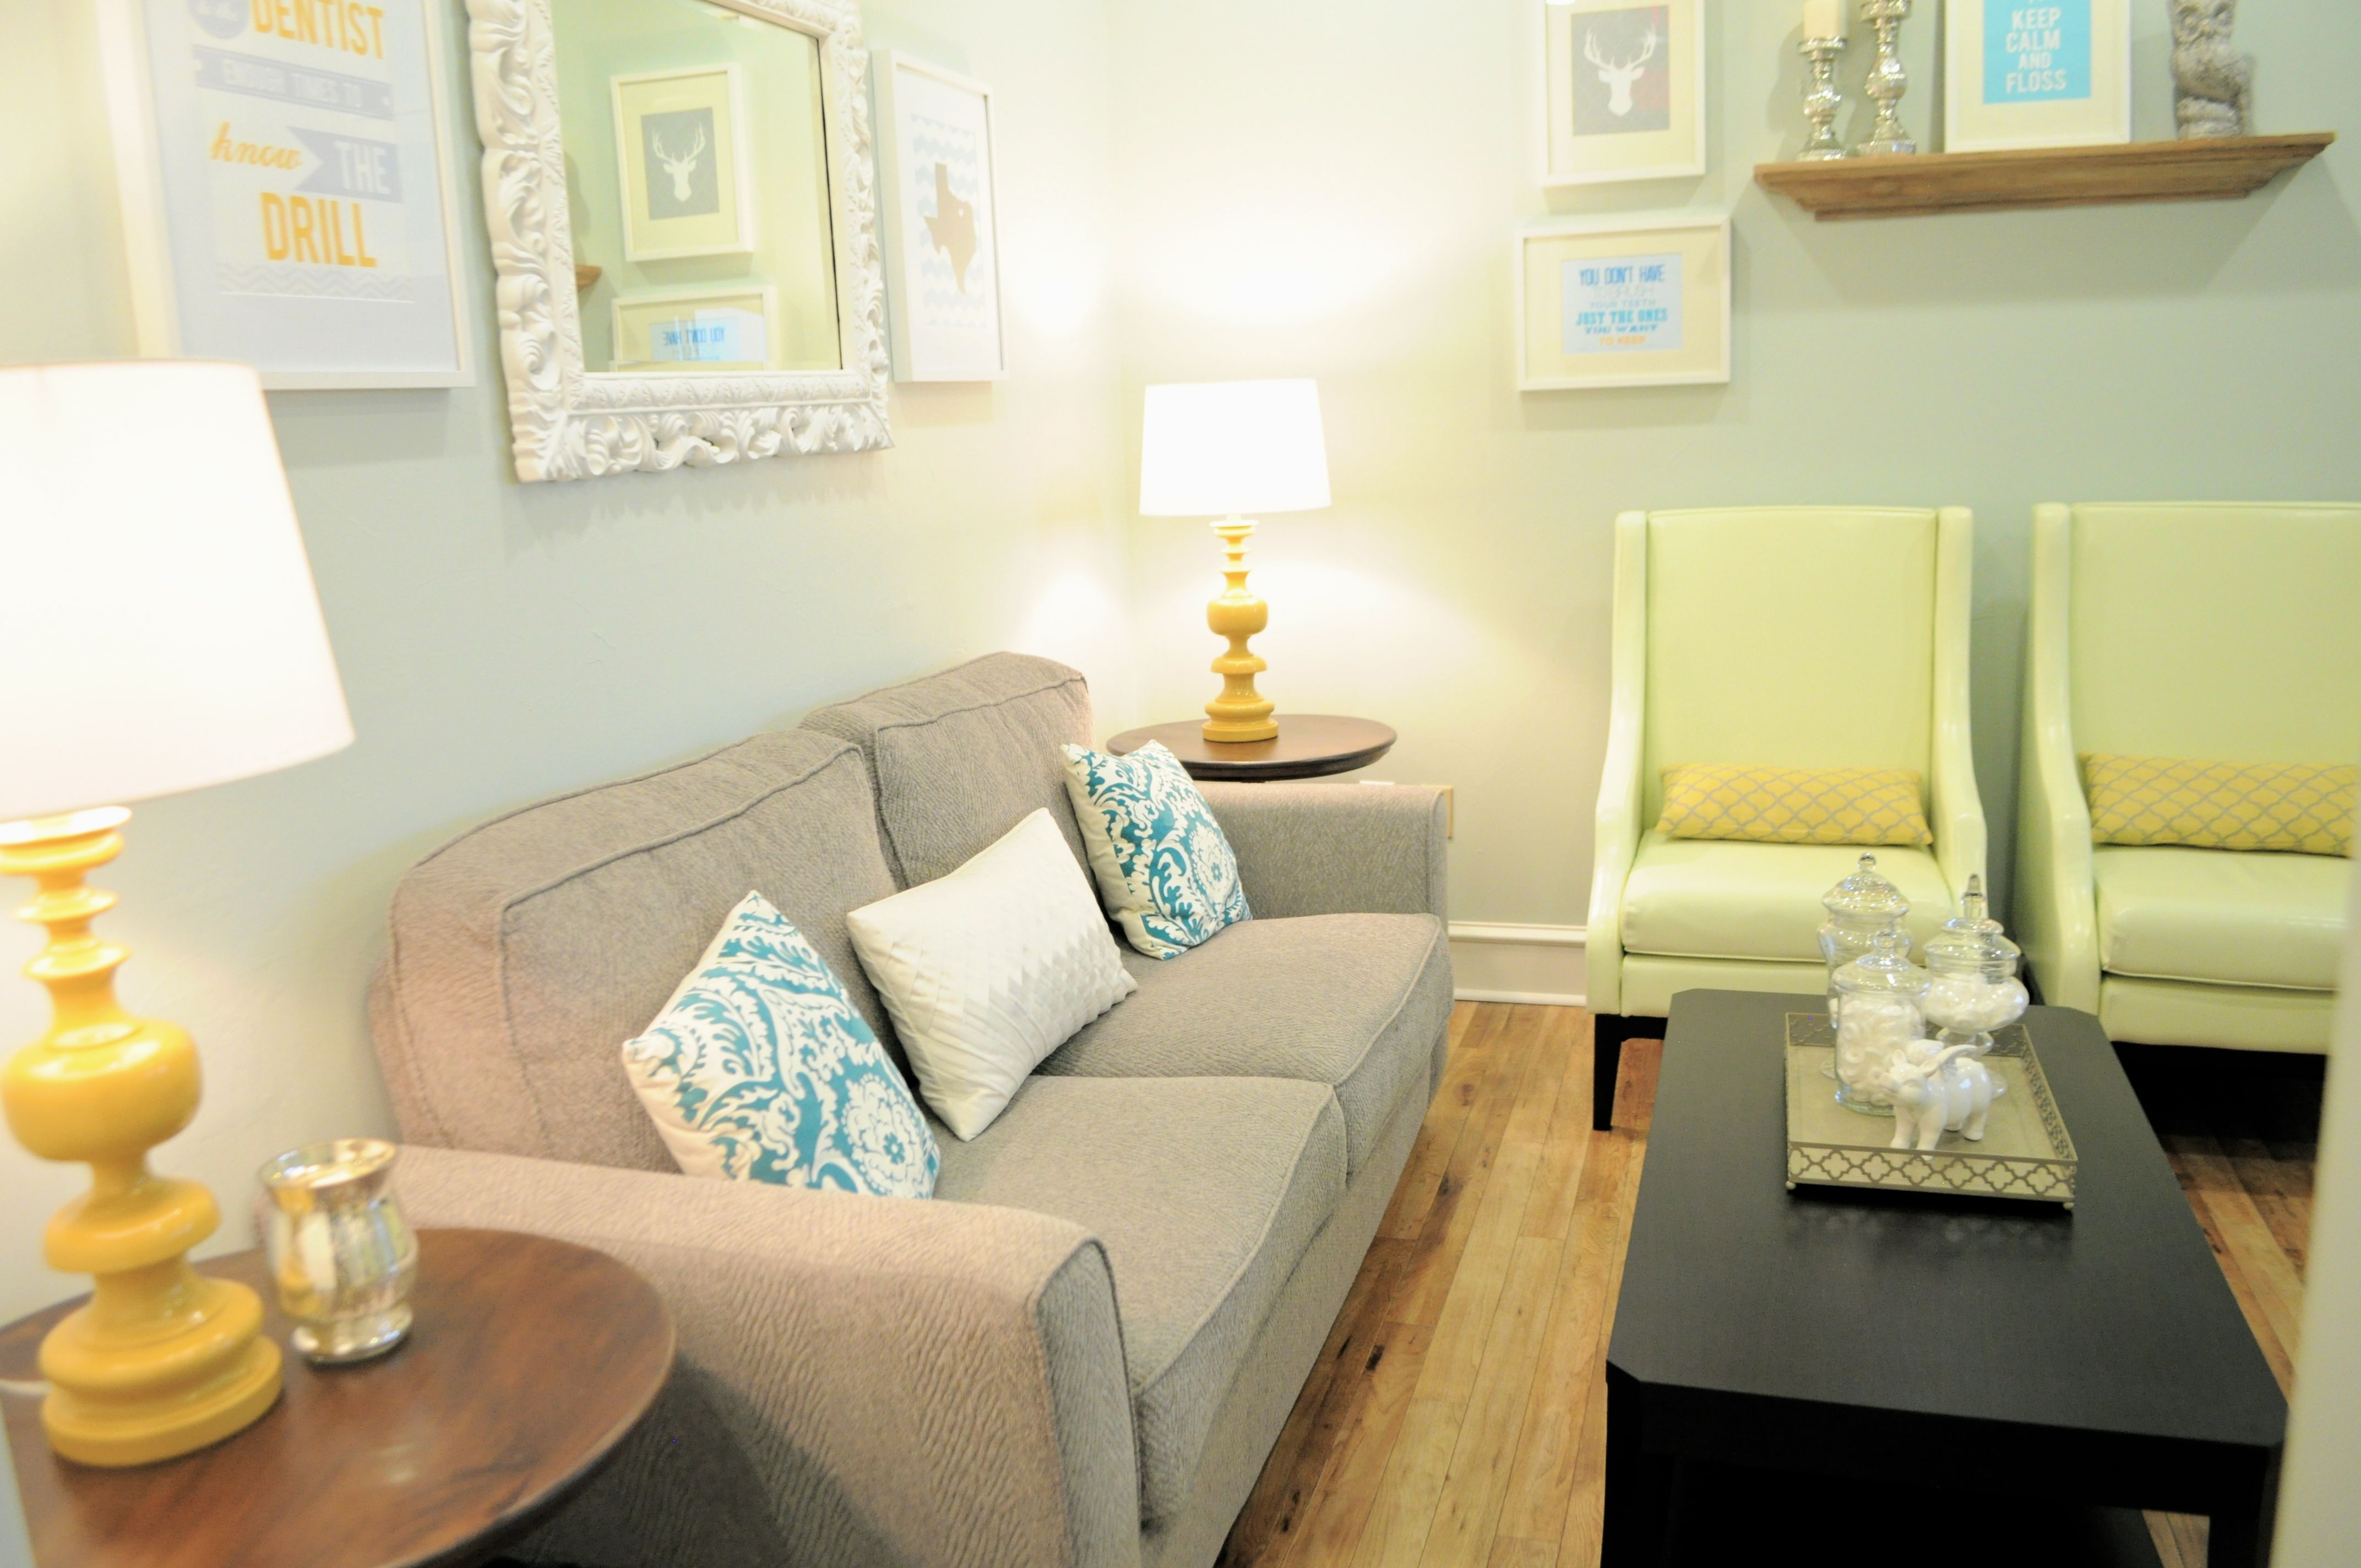 Awesome Office Remodel. Itu0027s So Relaxing And Calm. Not Your Typical Waiting  Room.